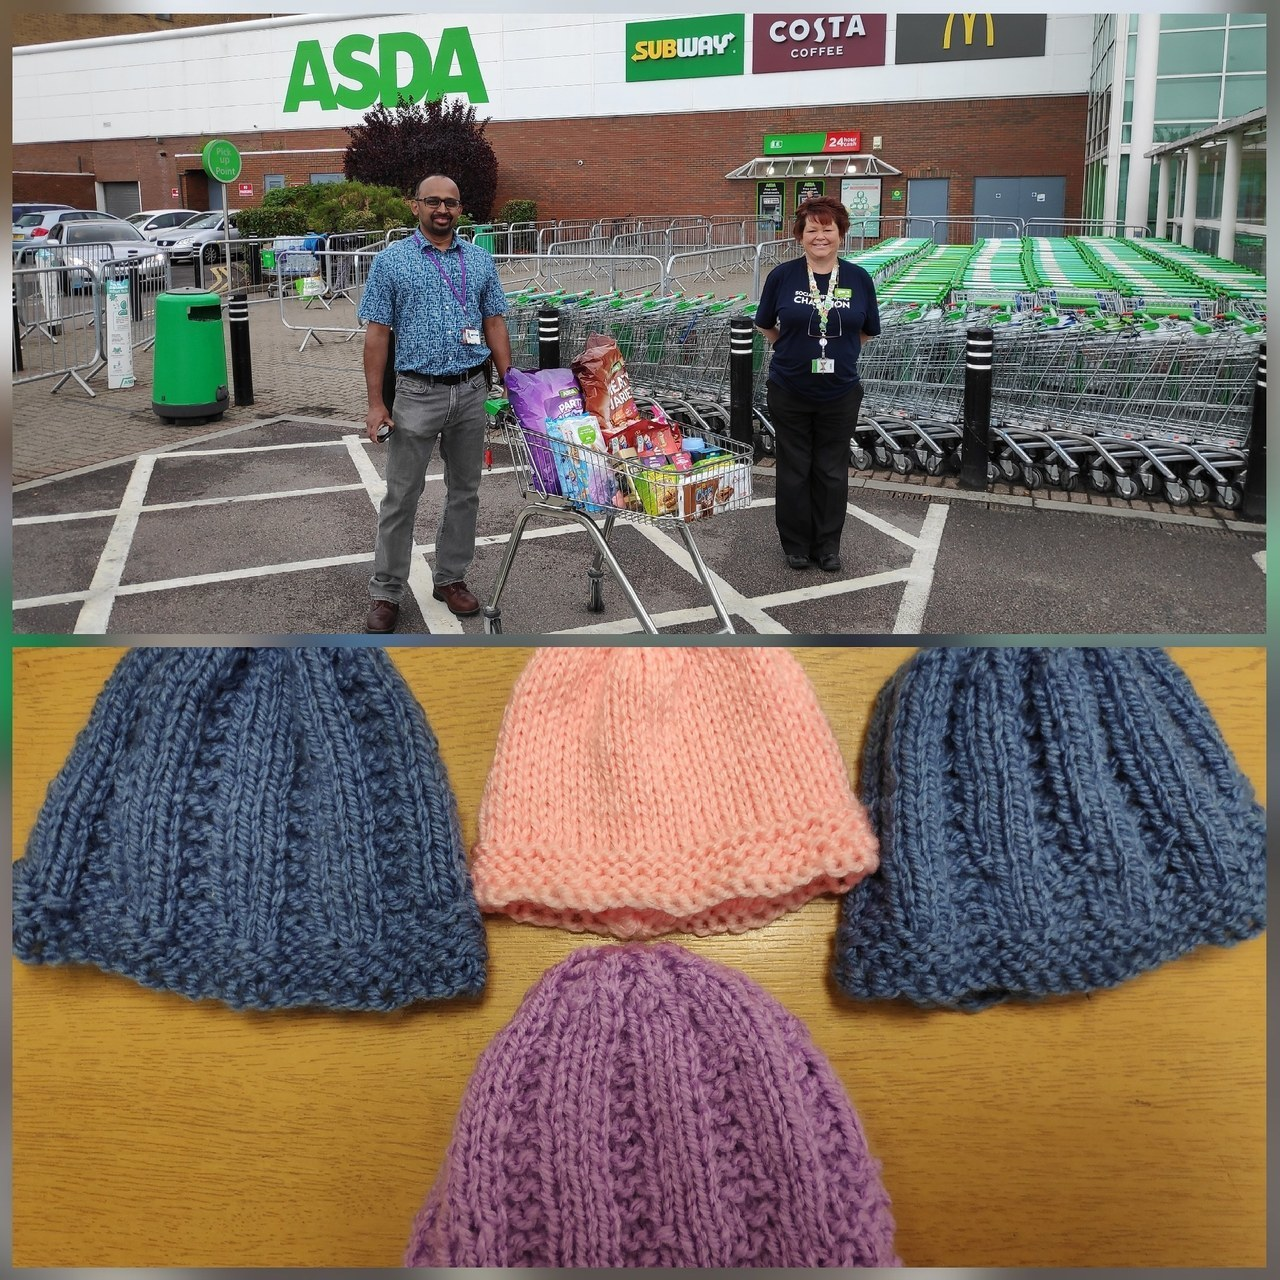 Thanks from Watford Hospital | Asda Watford